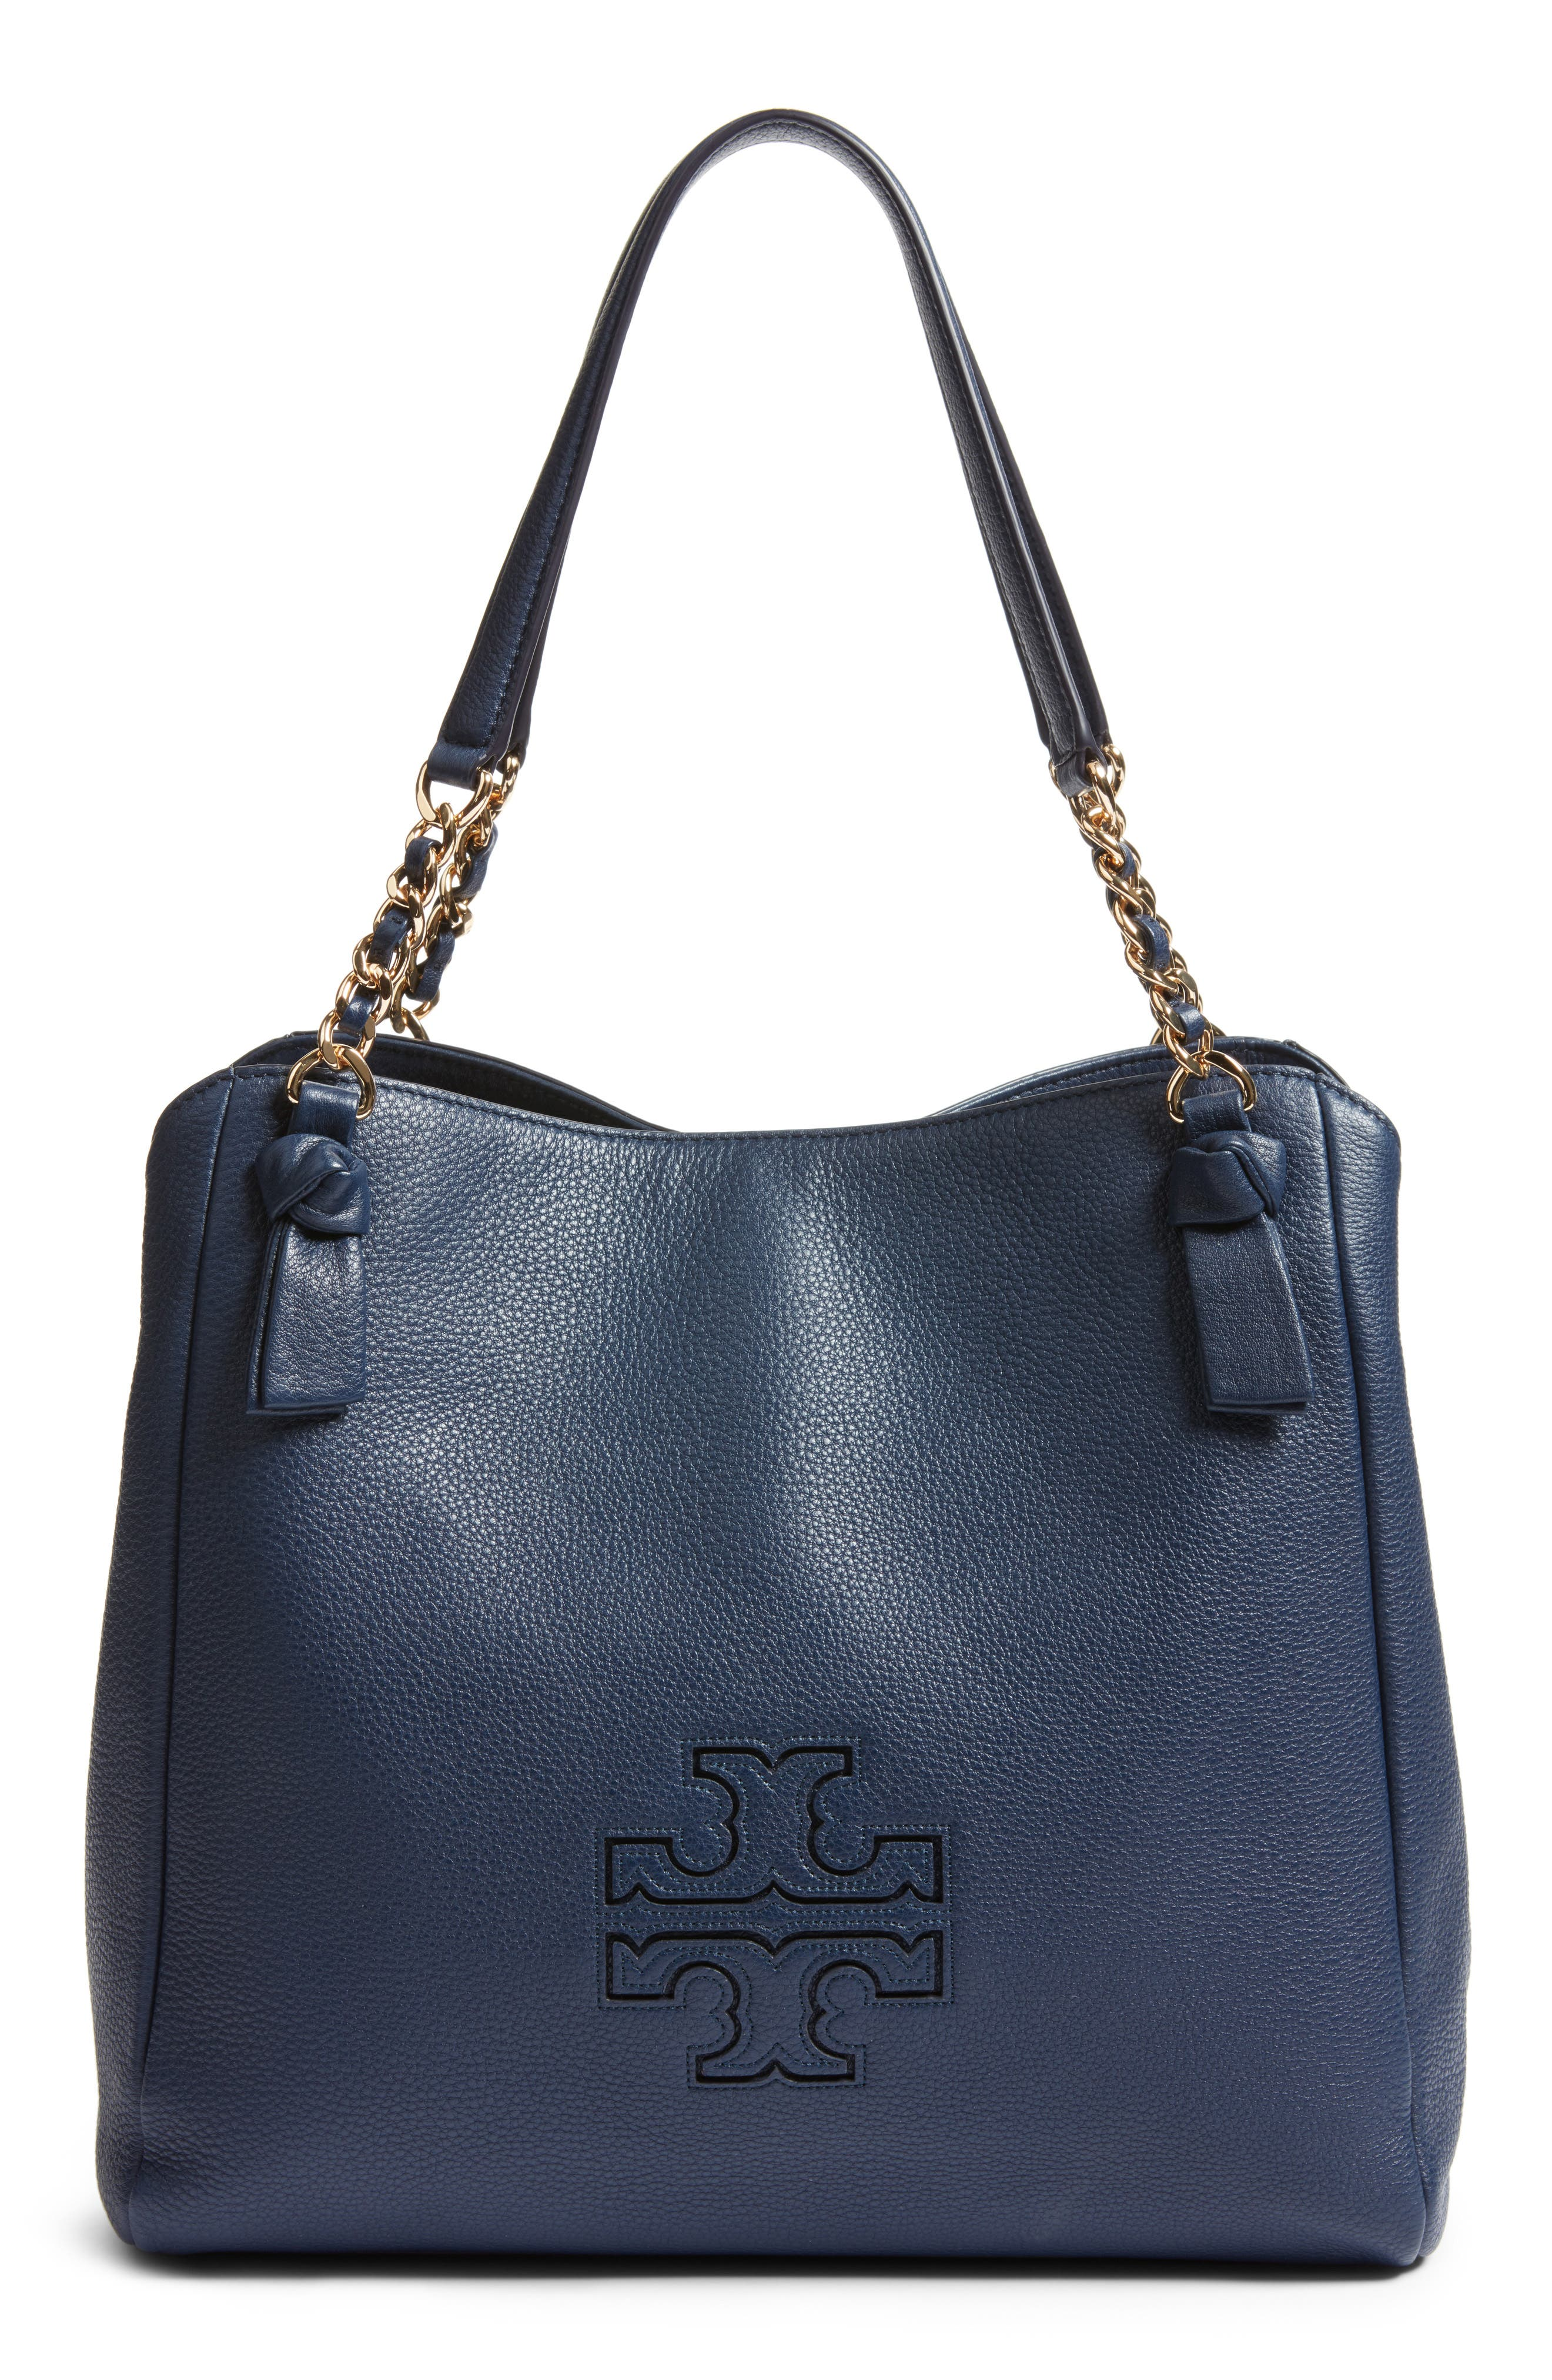 Alternate Image 1 Selected - Tory Burch 'Harper' Leather Tote